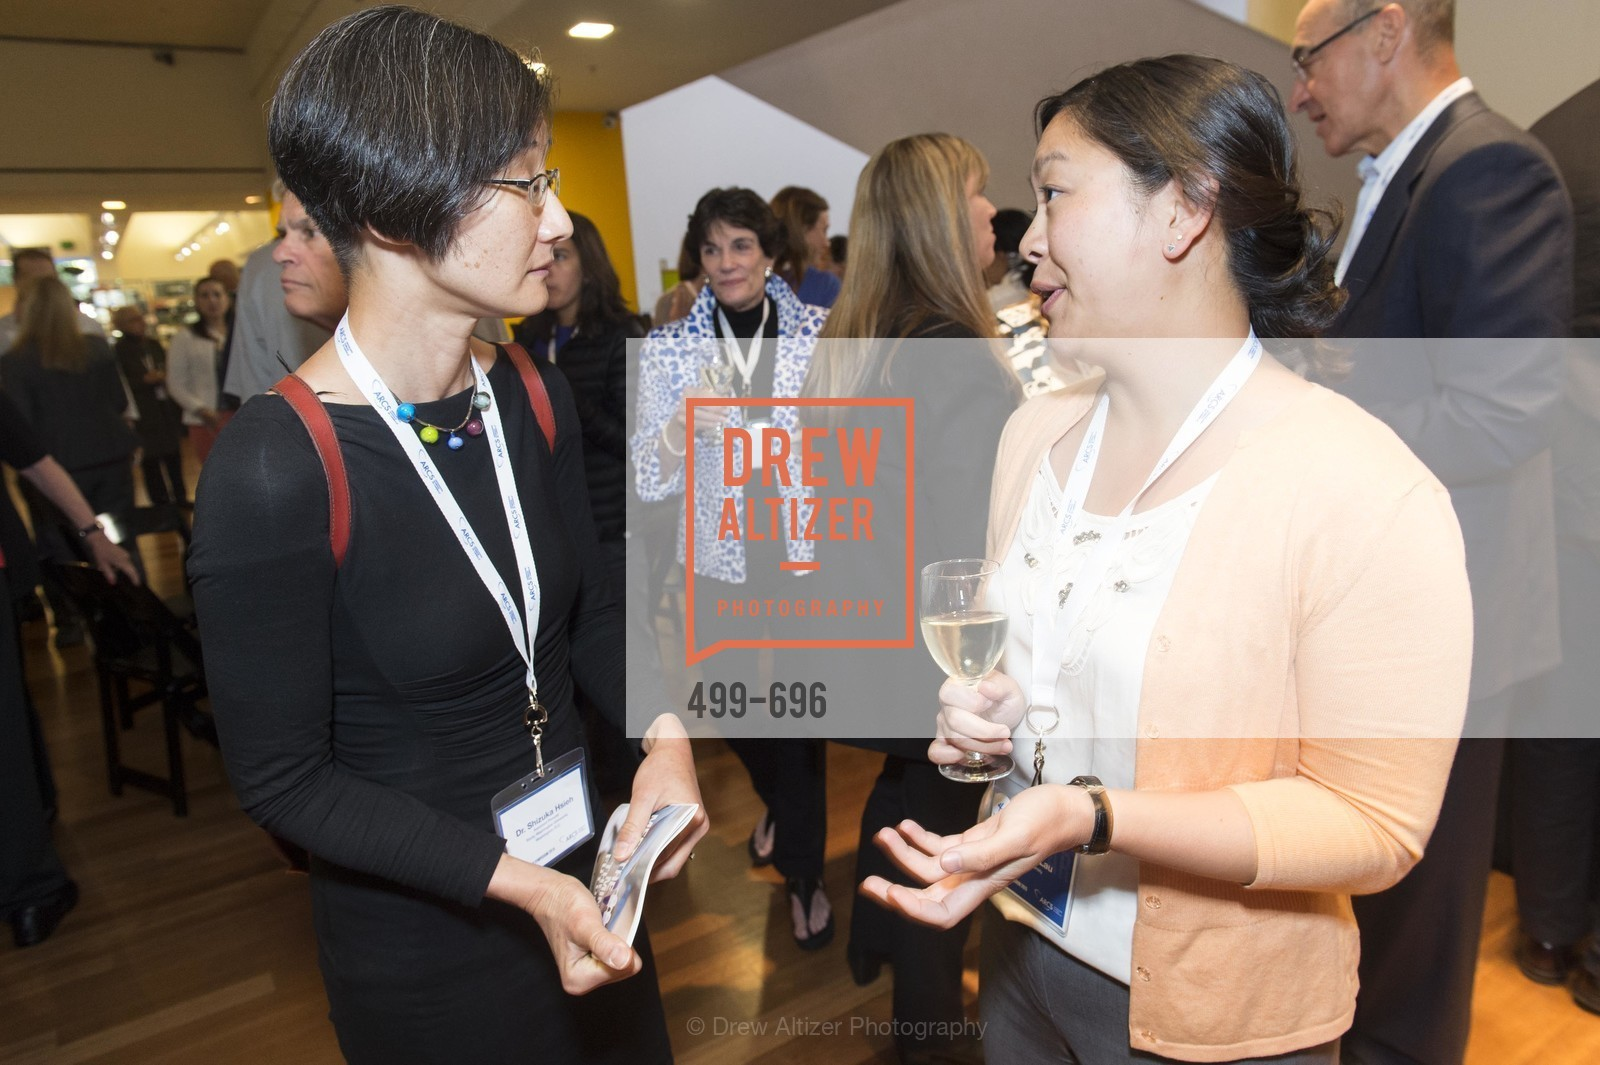 Shizuka Hsieh, Kimberly Lau, ARCS FOUNDATION Scholar Symposium, US, May 5th, 2015,Drew Altizer, Drew Altizer Photography, full-service event agency, private events, San Francisco photographer, photographer California